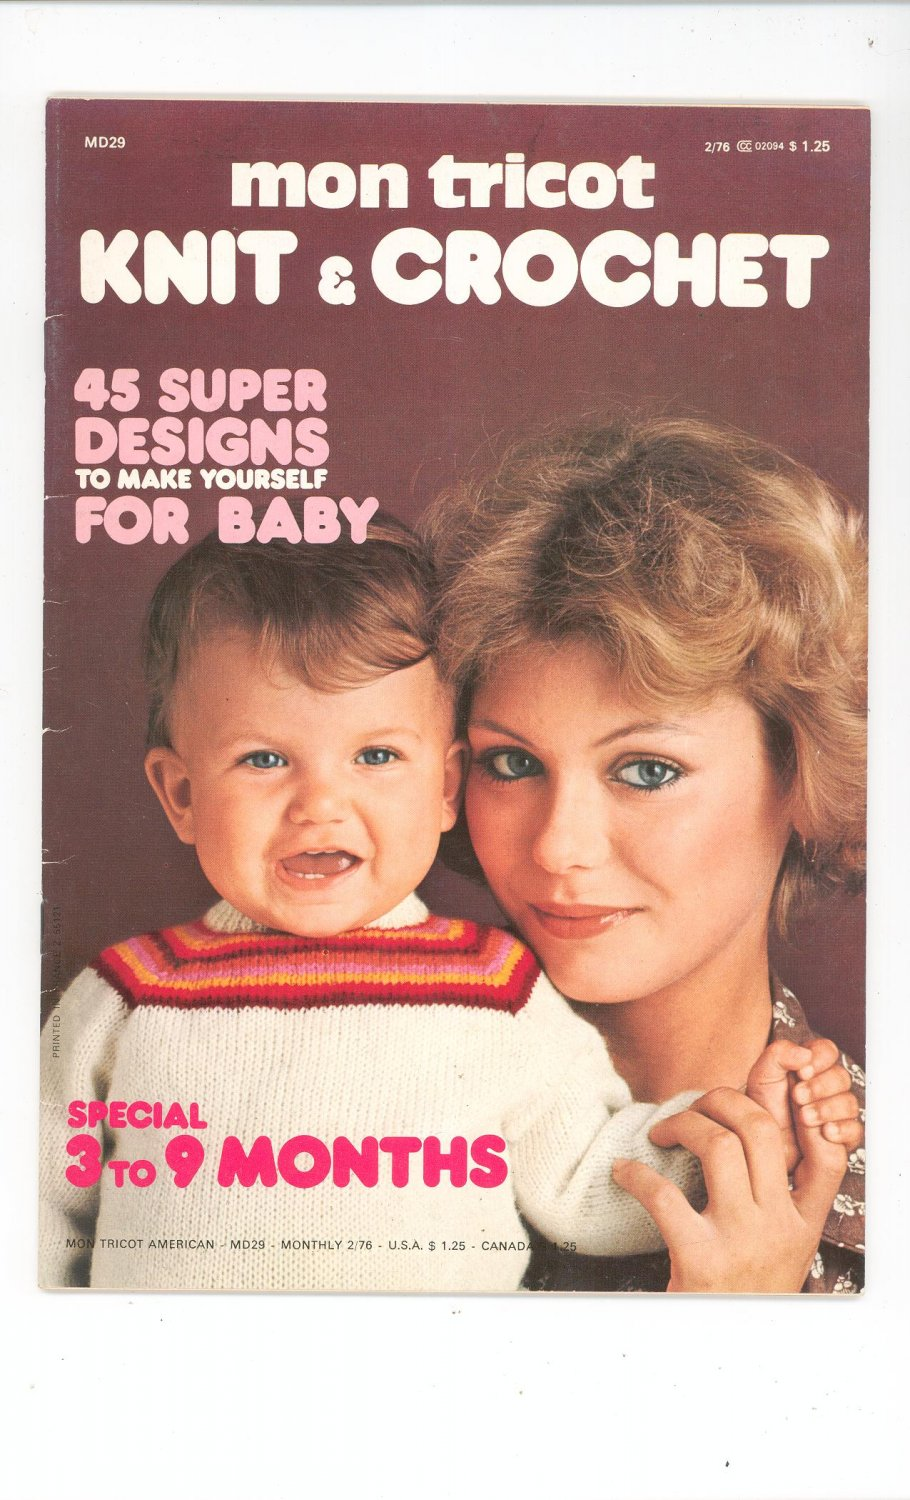 Mon Tricot Knit & Crochet Magazine Back Issue February 1976 For Baby